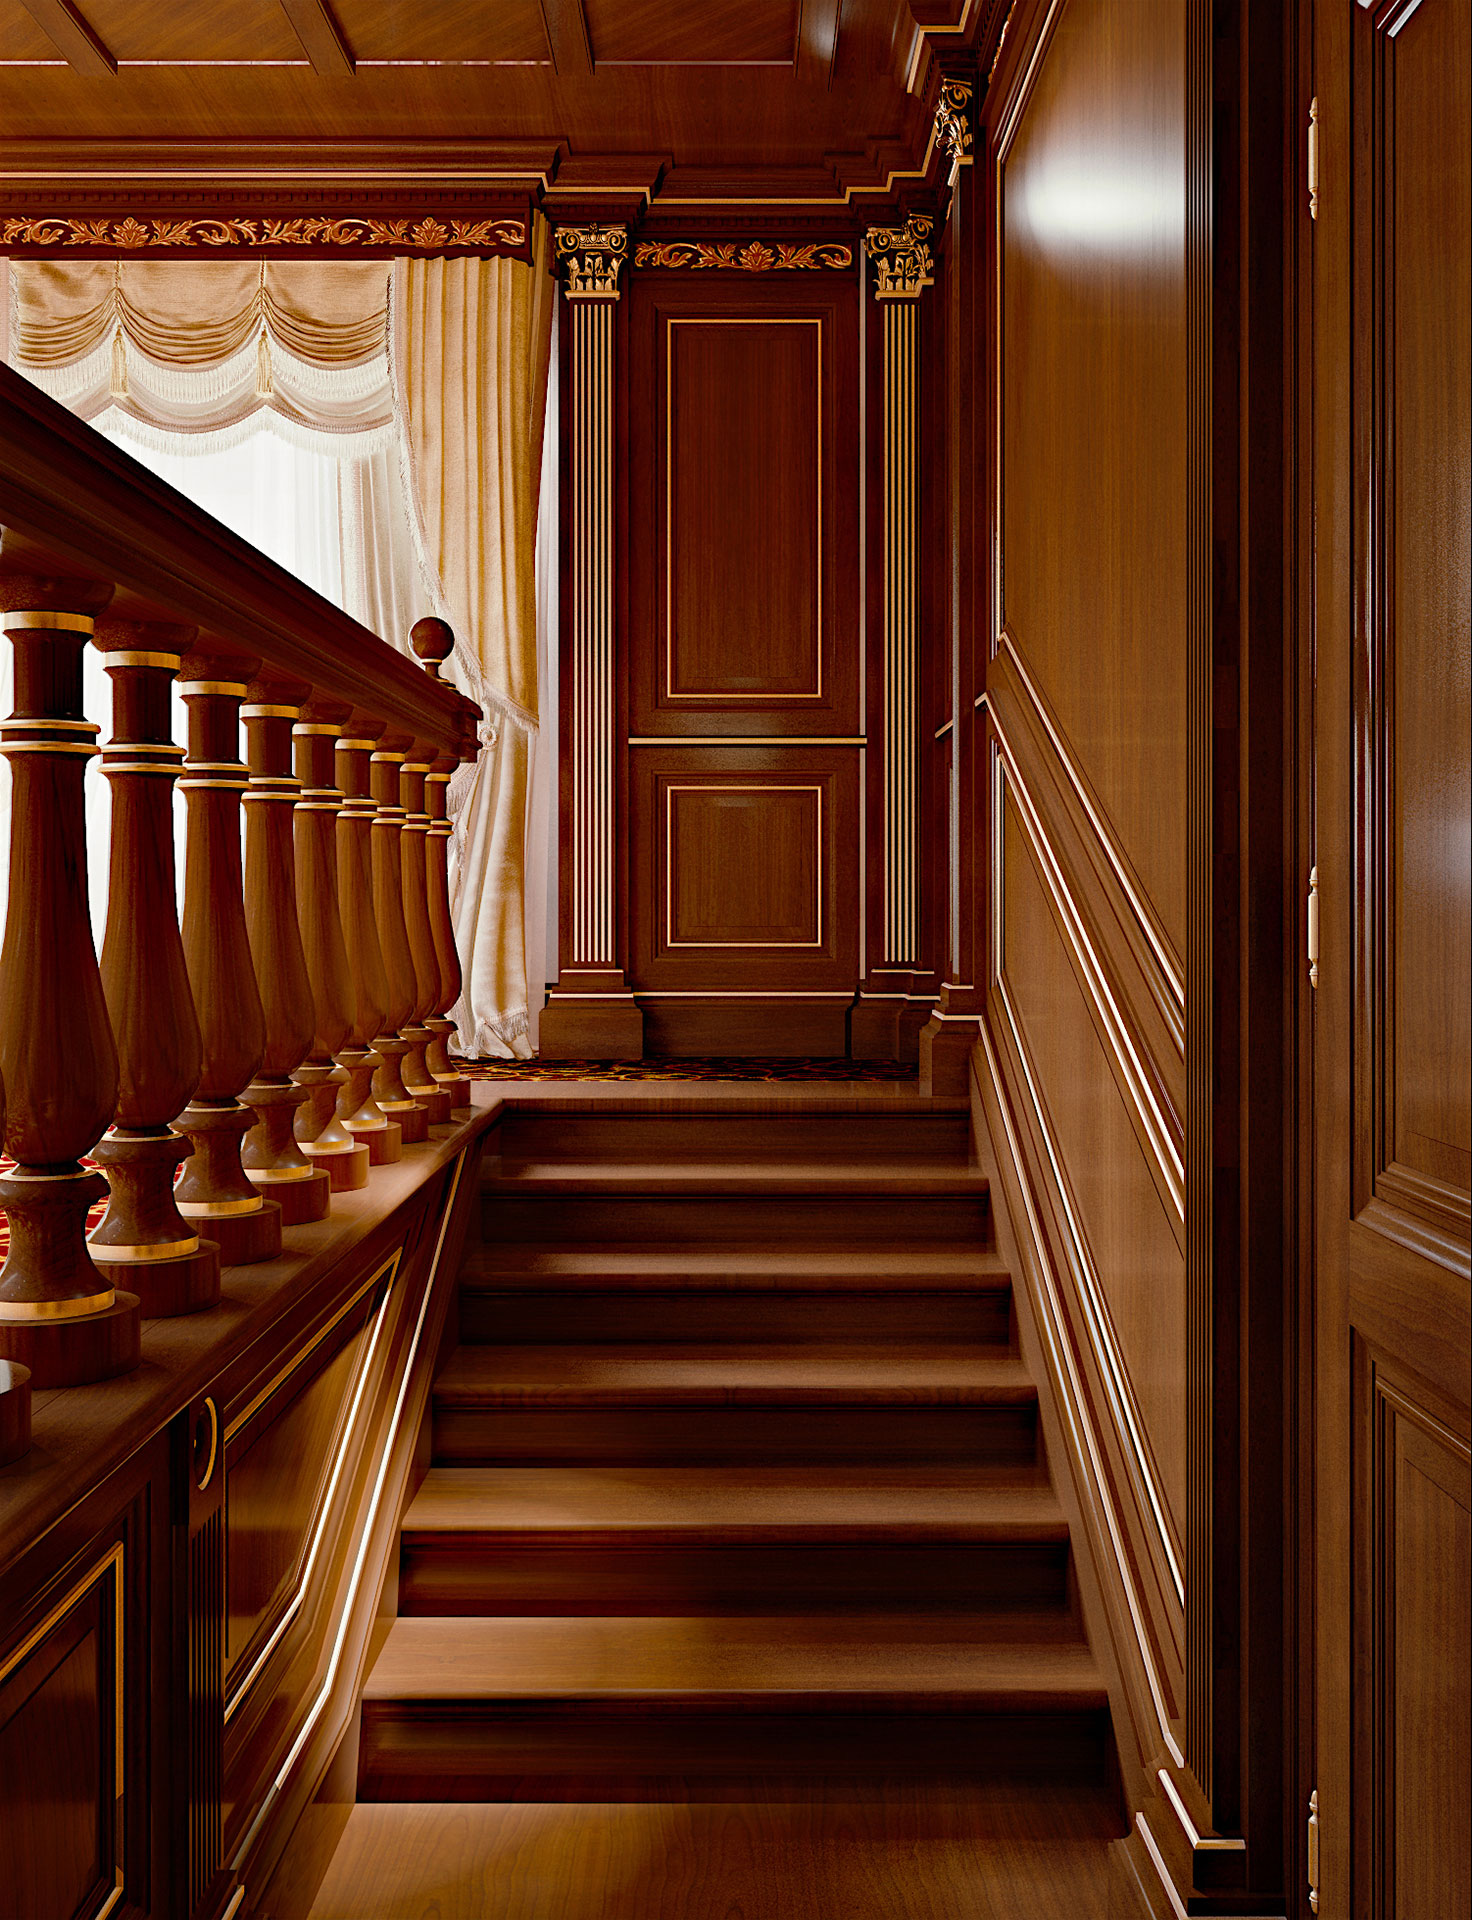 Faoma wooden staircase